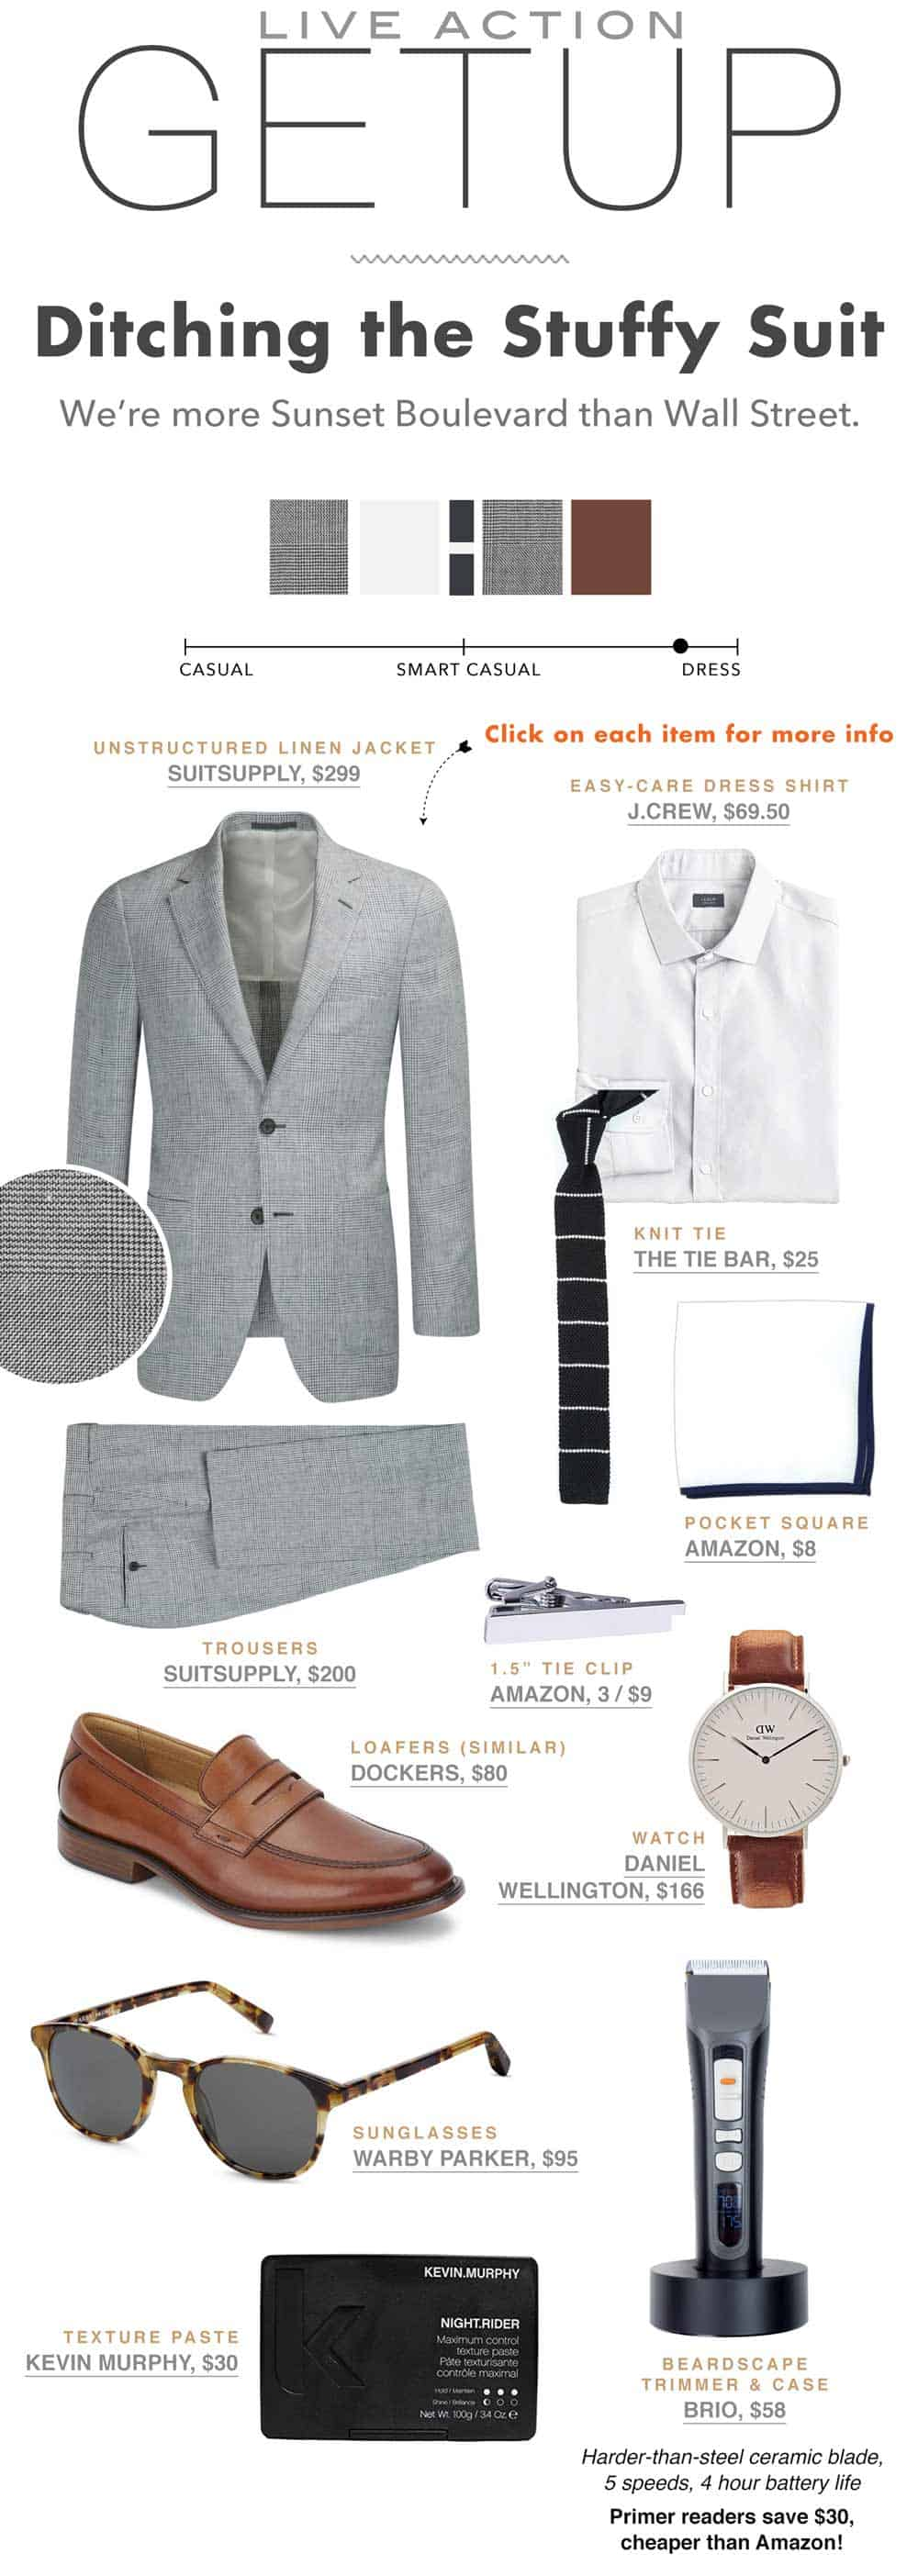 Primer The Getup - Gray Linen Suit brown loafers knit tie outfit inspiration flatlay